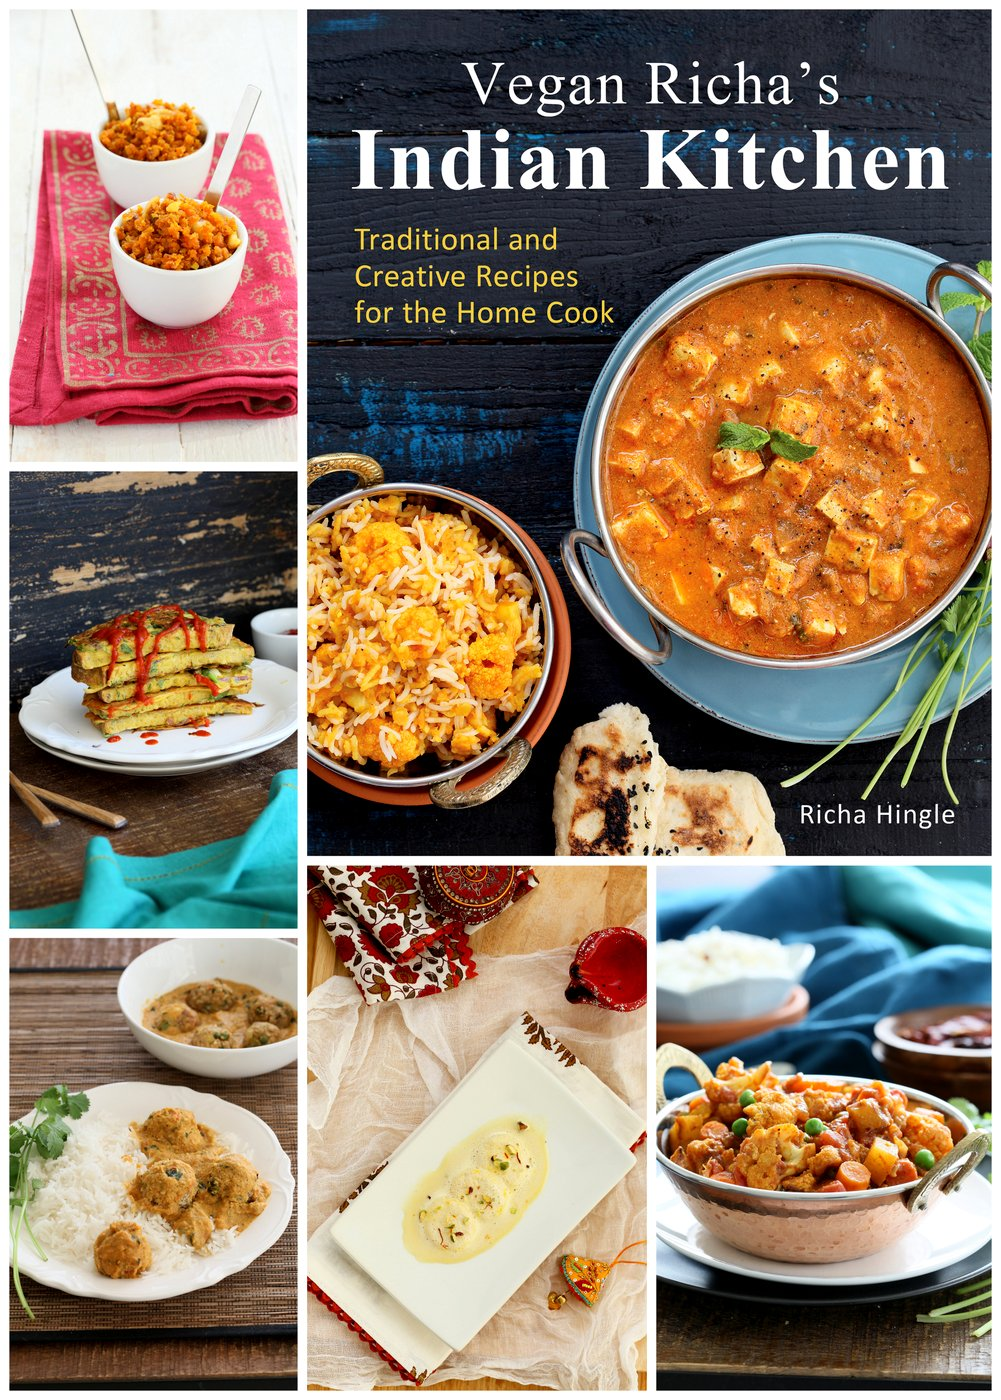 Vegan richas indian kitchen the fig tree richa takes the reader on a personal journey through her heart felt introduction and the recipes in her book vegan richas indian cooking forumfinder Images